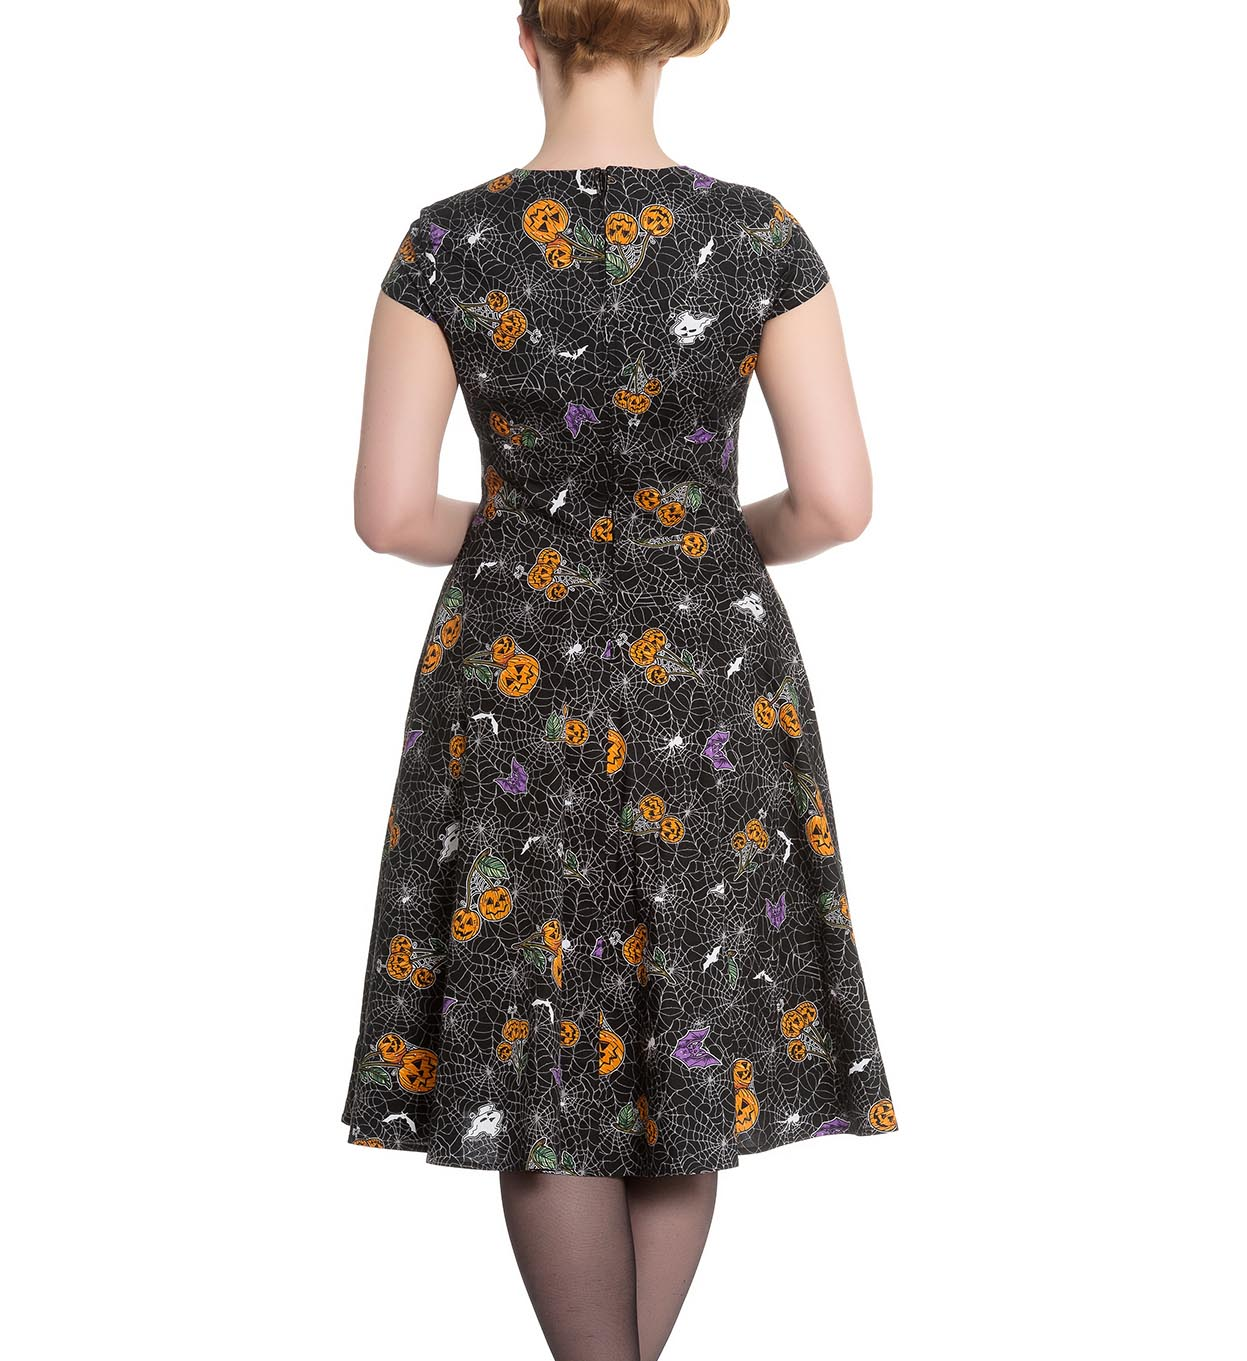 Hell-Bunny-Black-Pinup-50s-Goth-Webs-Dress-HARLOW-Halloween-All-Sizes thumbnail 17